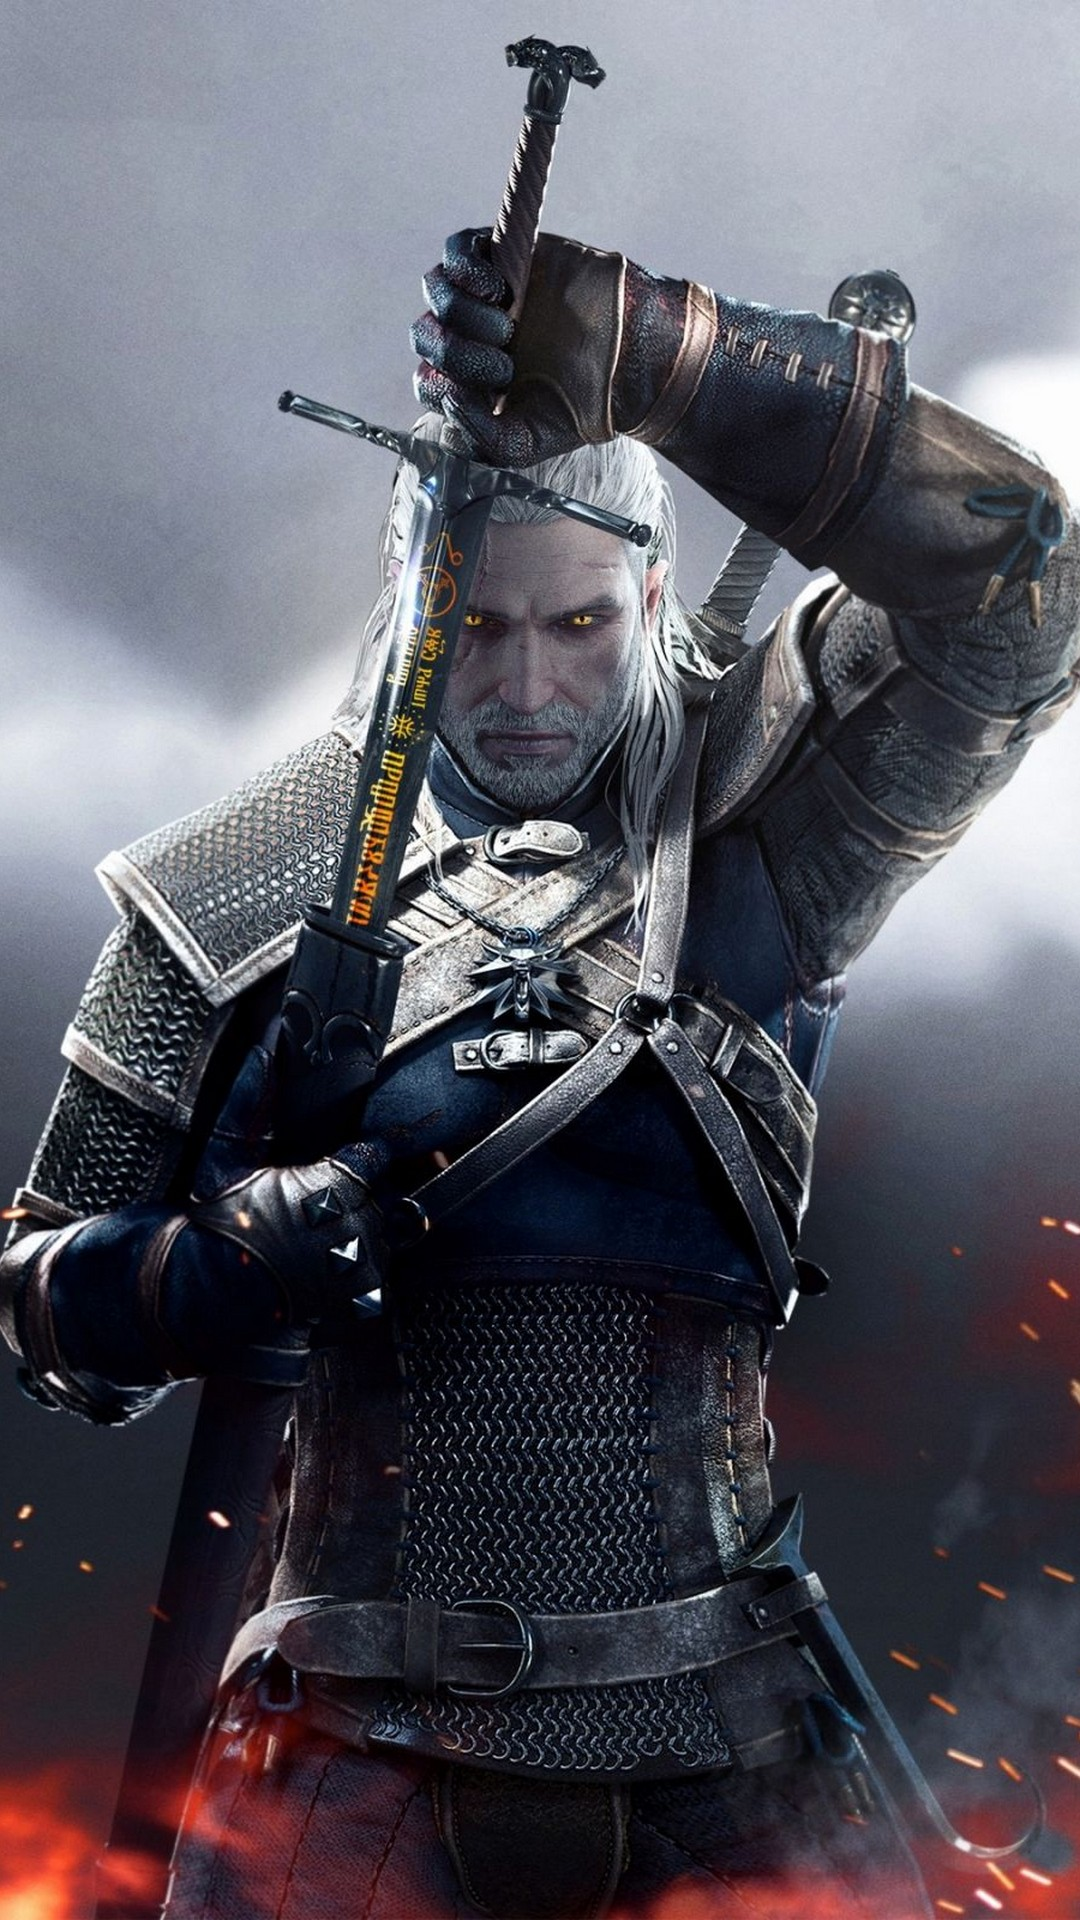 Wallpapers Phone The Witcher with high-resolution 1080x1920 pixel. You can use this wallpaper for your Android backgrounds, Tablet, Samsung Screensavers, Mobile Phone Lock Screen and another Smartphones device